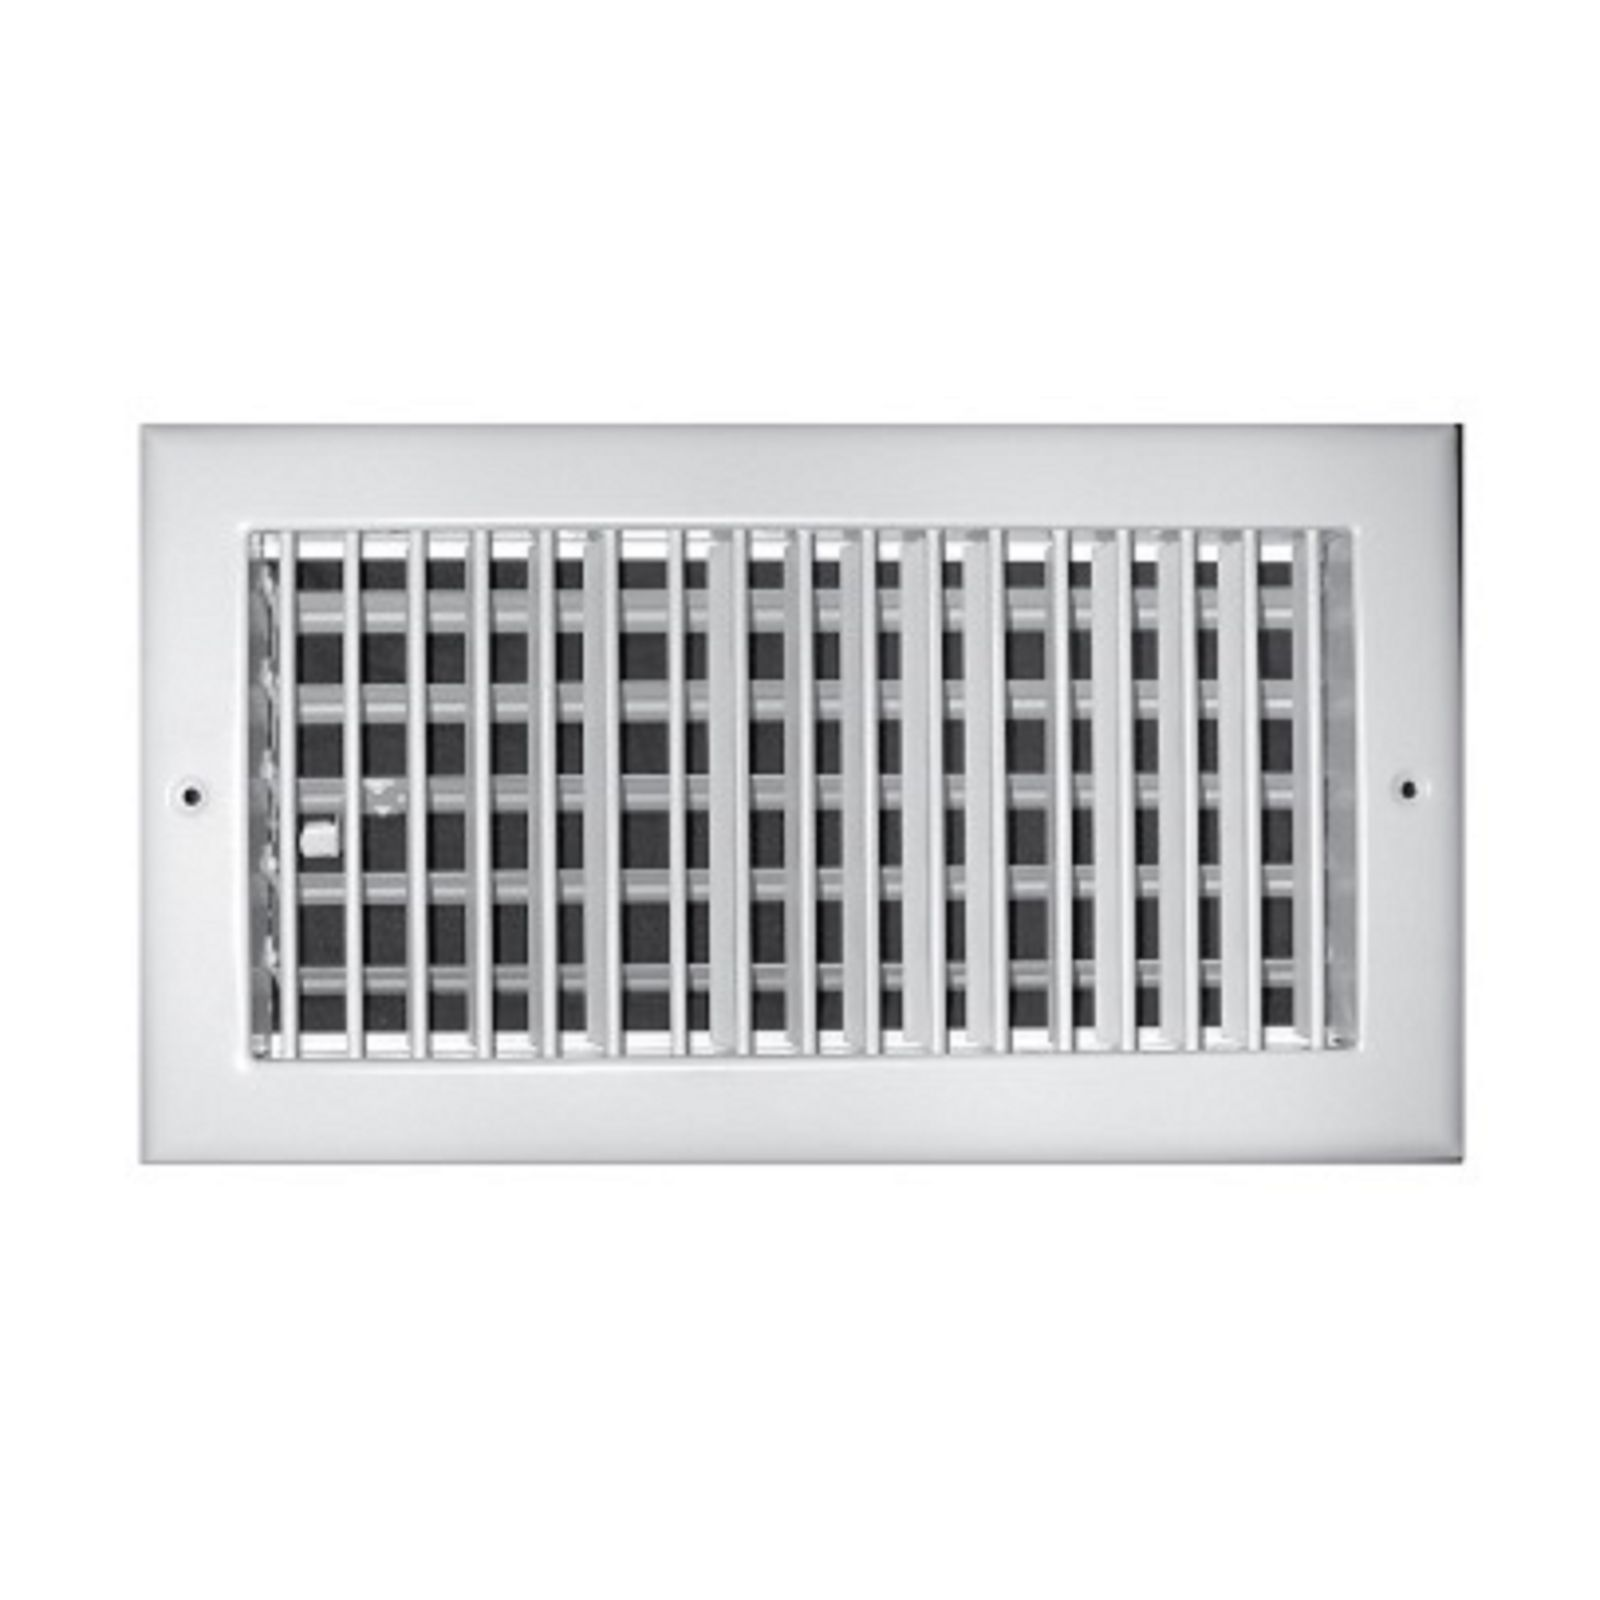 "TRUaire A210VM 16X08 - Aluminum Adjustable 1-Way Wall/Ceiling Register, Vertical, Multi Shutter Damper, White, 16"" X 08"""